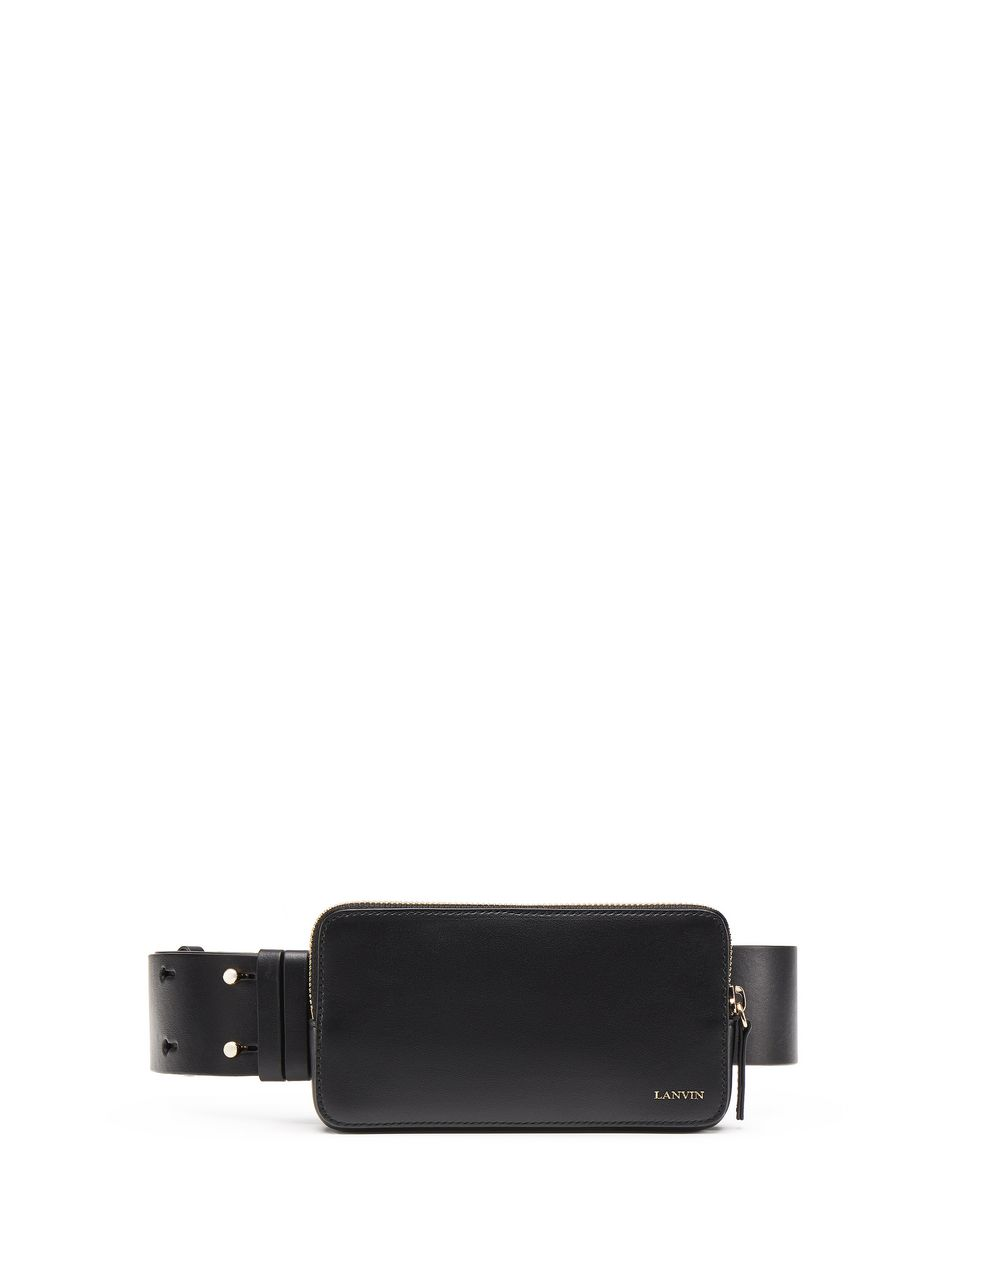 BLACK PIXEL-IT BAG - Lanvin